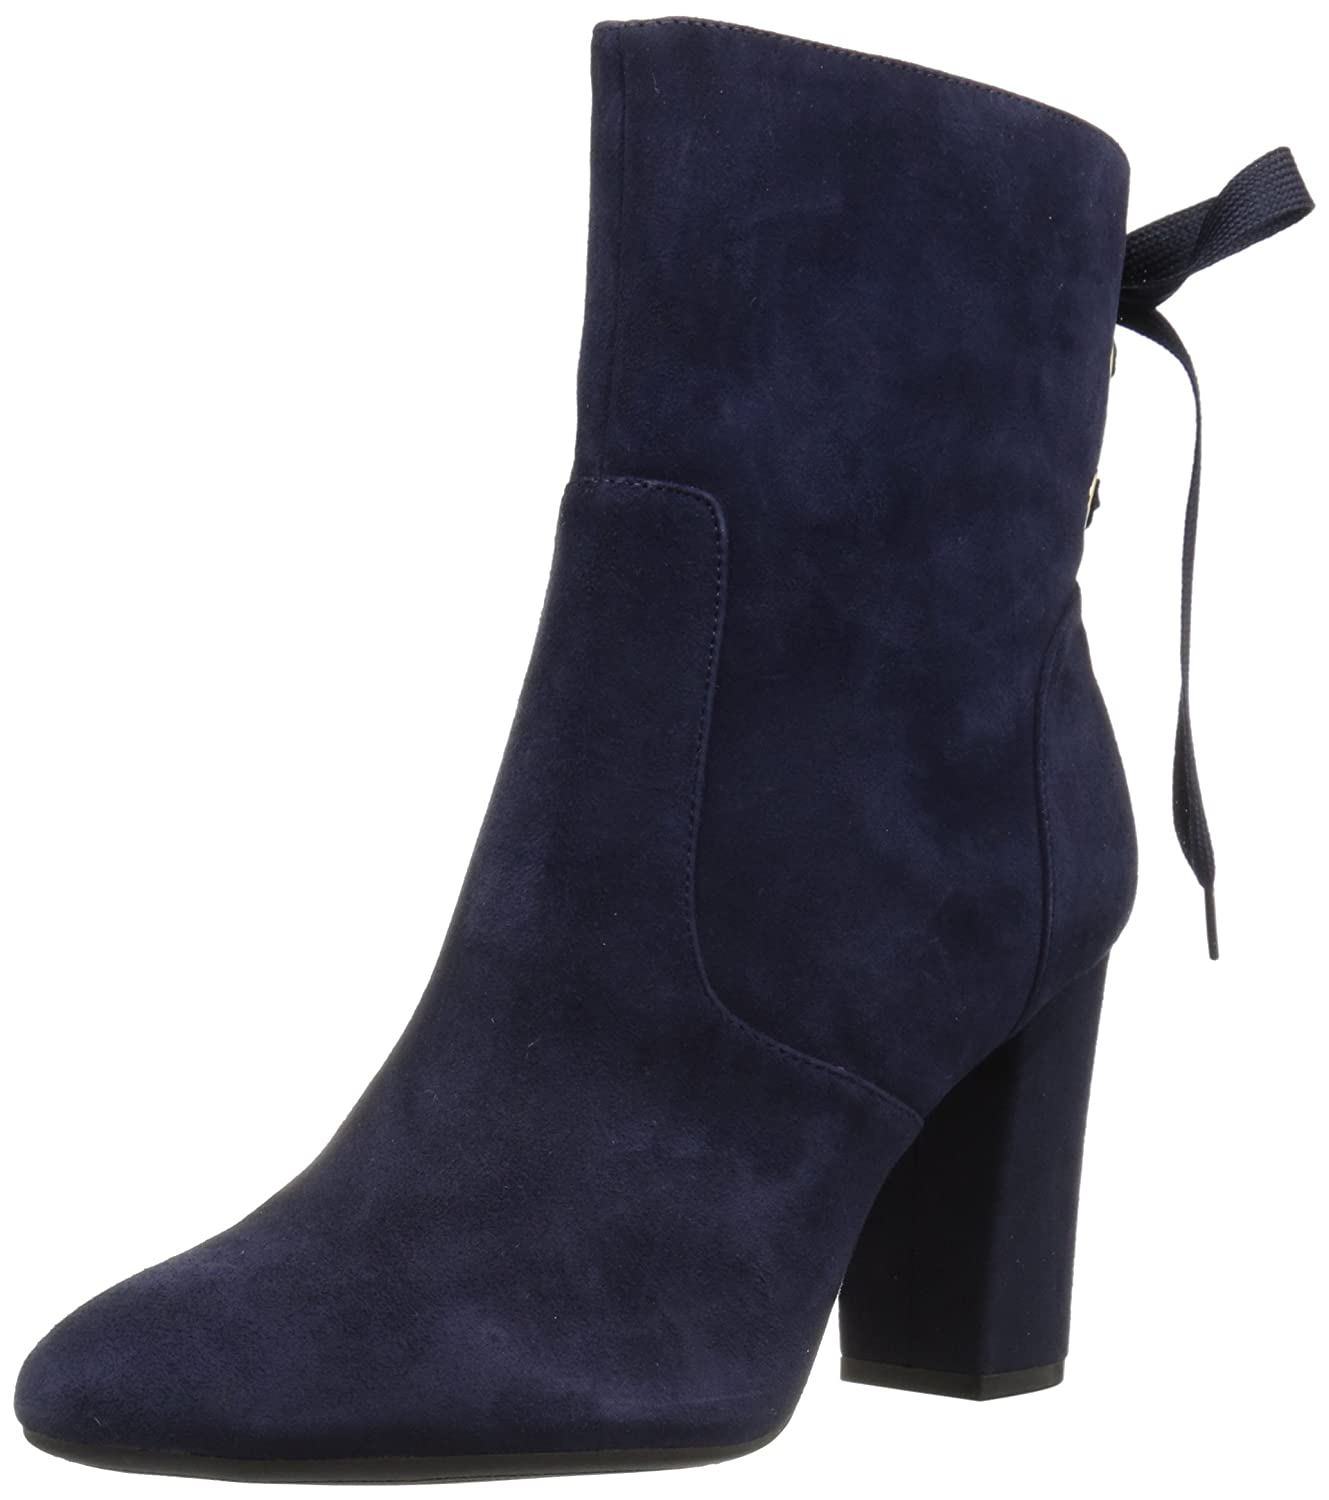 Tommy Hilfiger Women's Divah Fashion Boot B06XVJZT8R 6 B(M) US|Navy